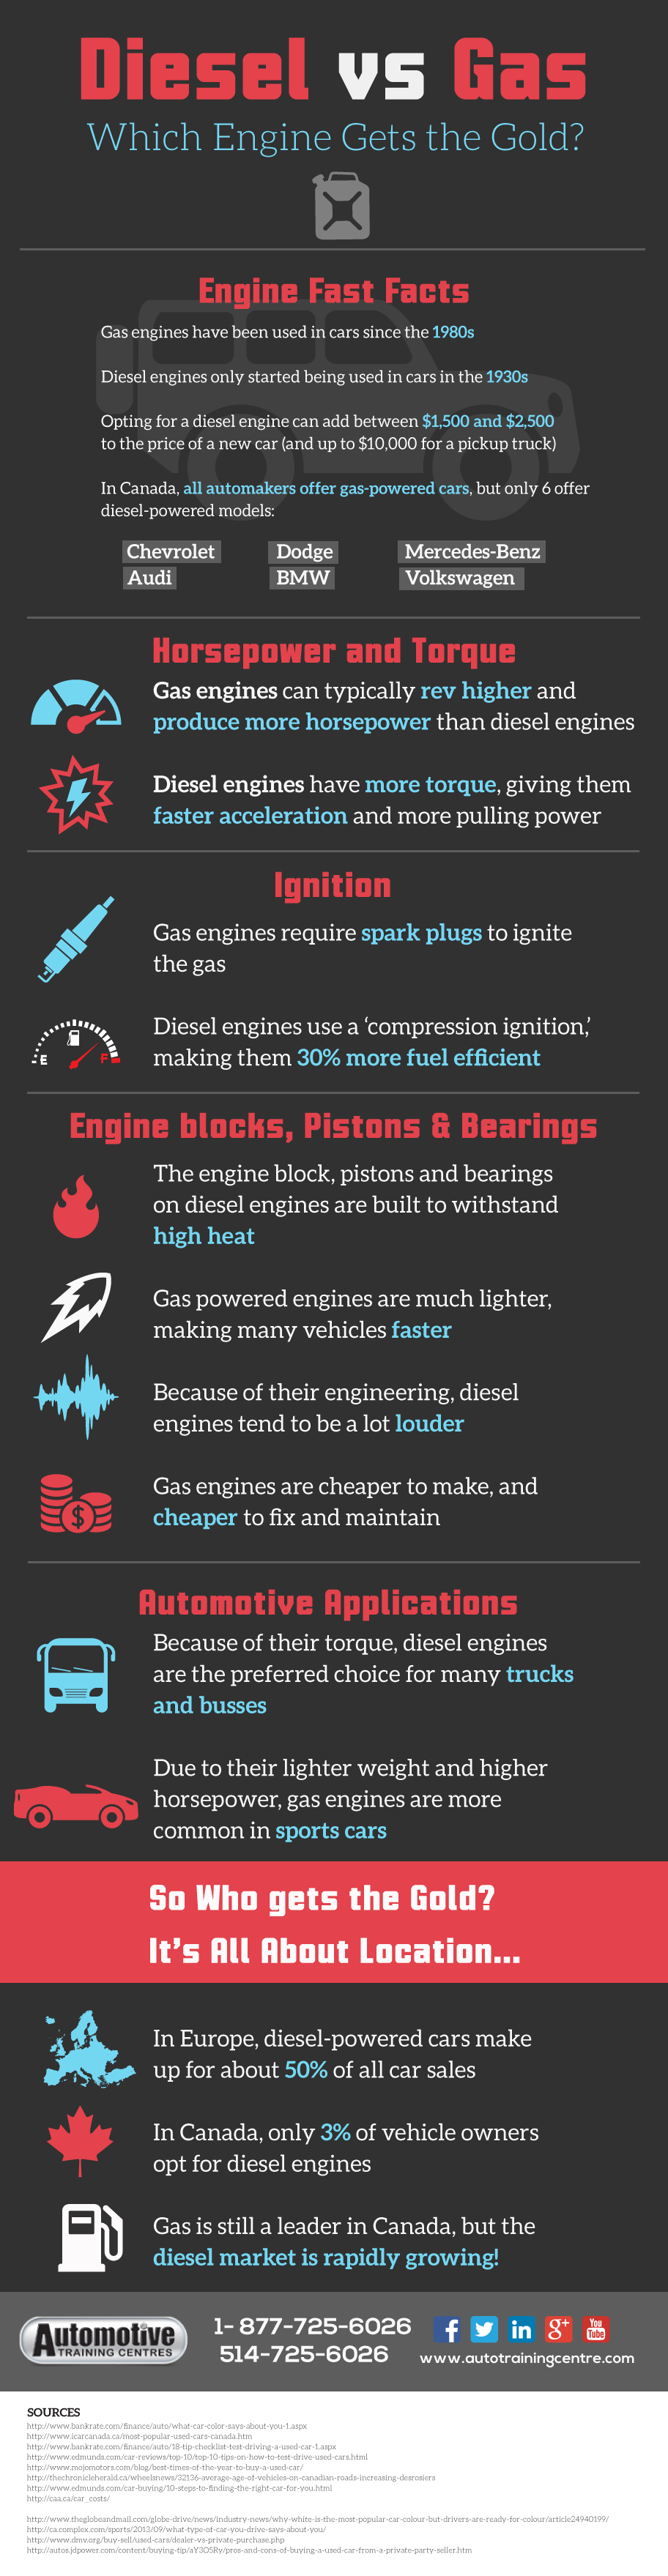 [Infographic] : Diesel vs Gas: Which Engine Gets the Gold